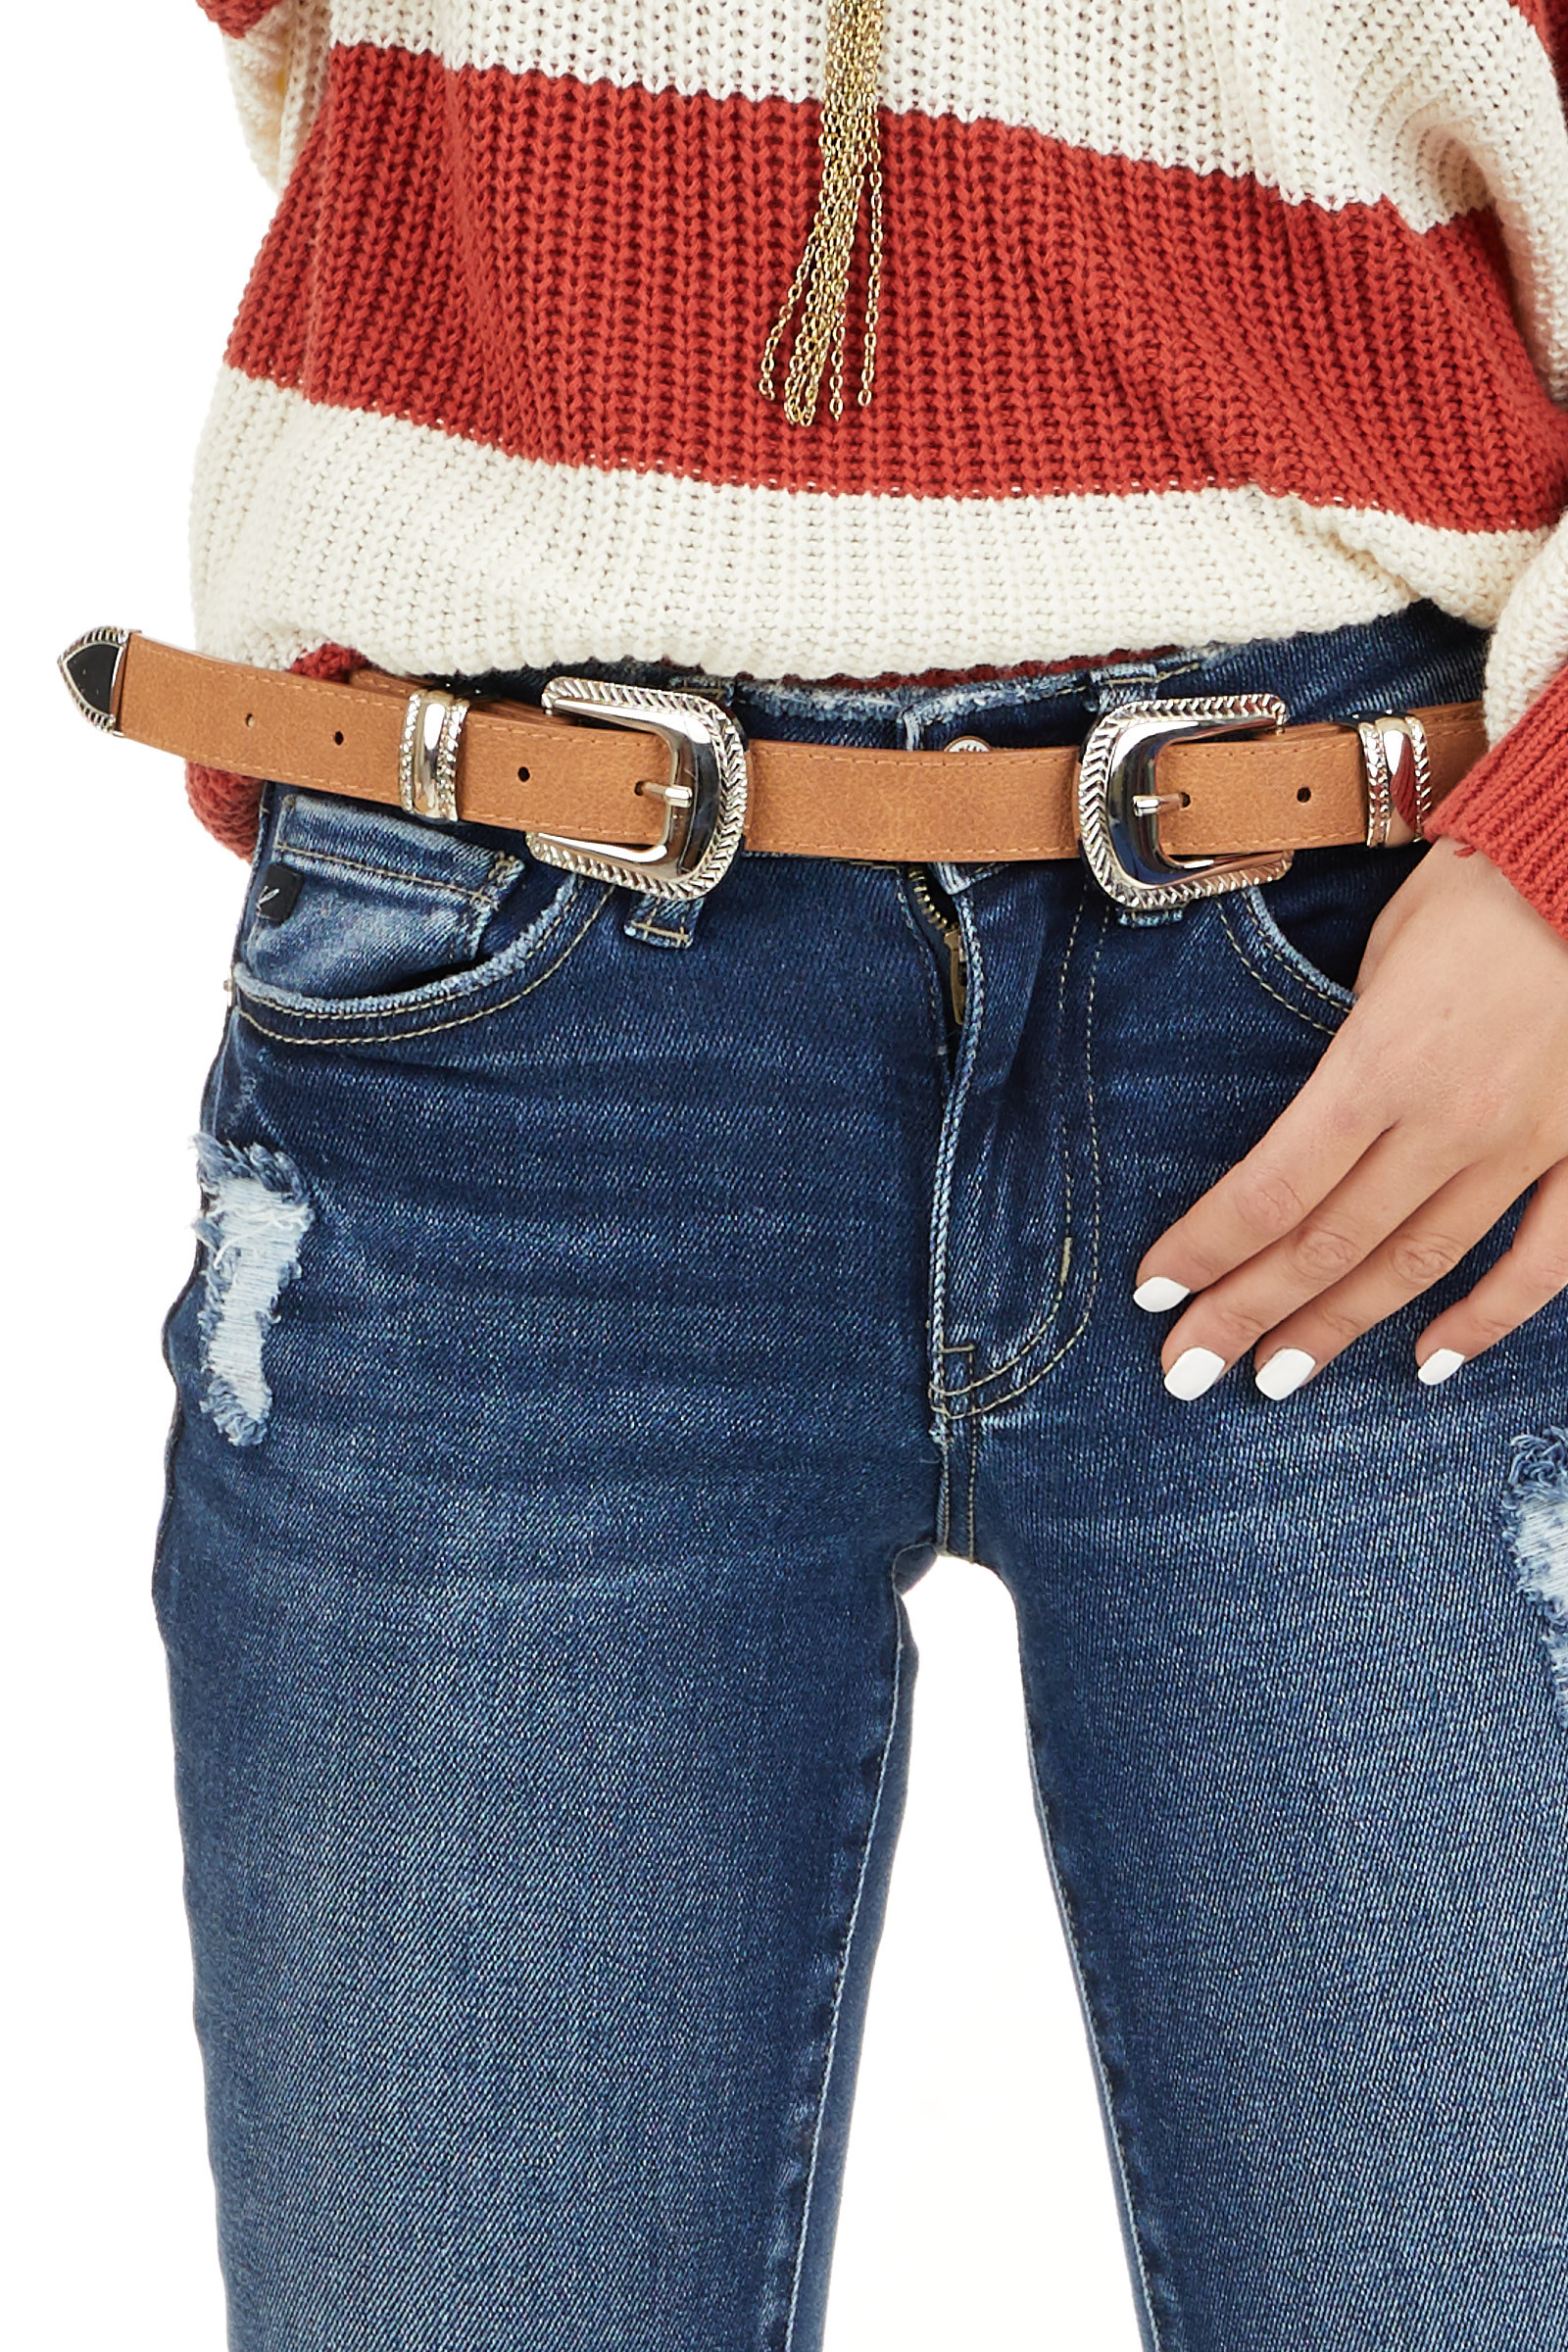 Tan Faux Leather Belt with Silver Double Buckle Detail